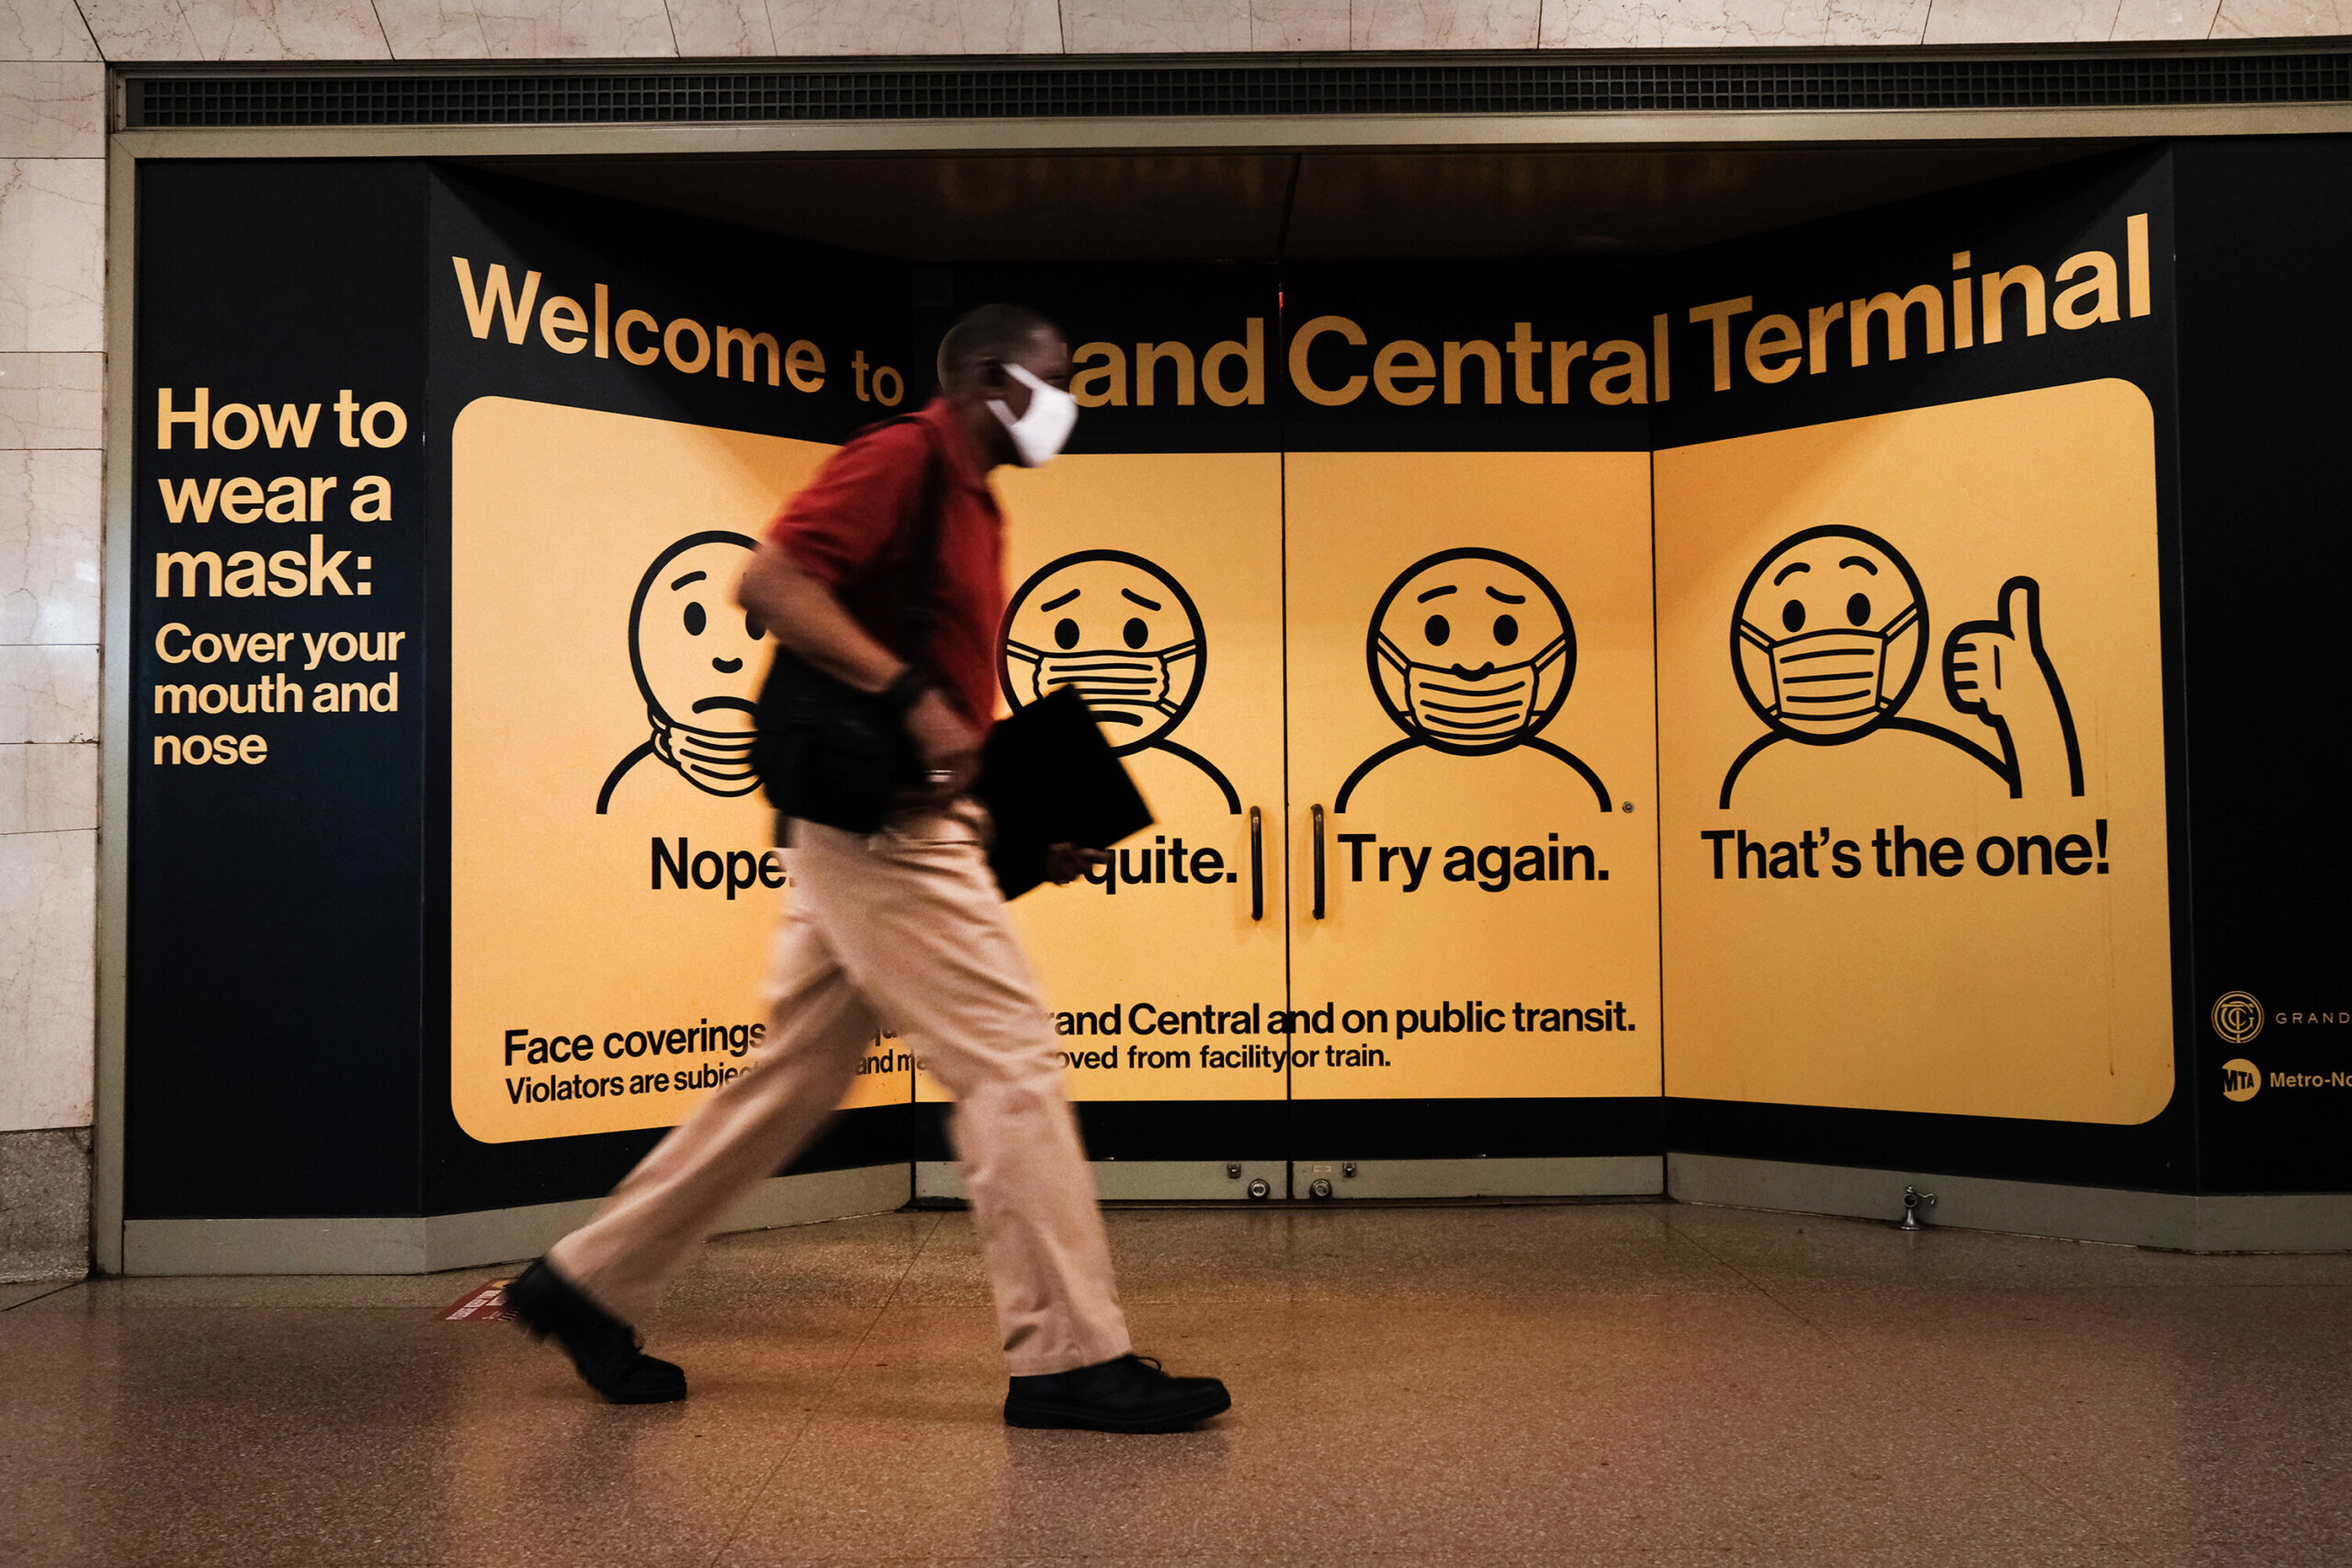 <i>Spencer Platt/Getty Images</i><br/>A person wears a mask while walking in Grand Central Terminal on July 27 in New York City.